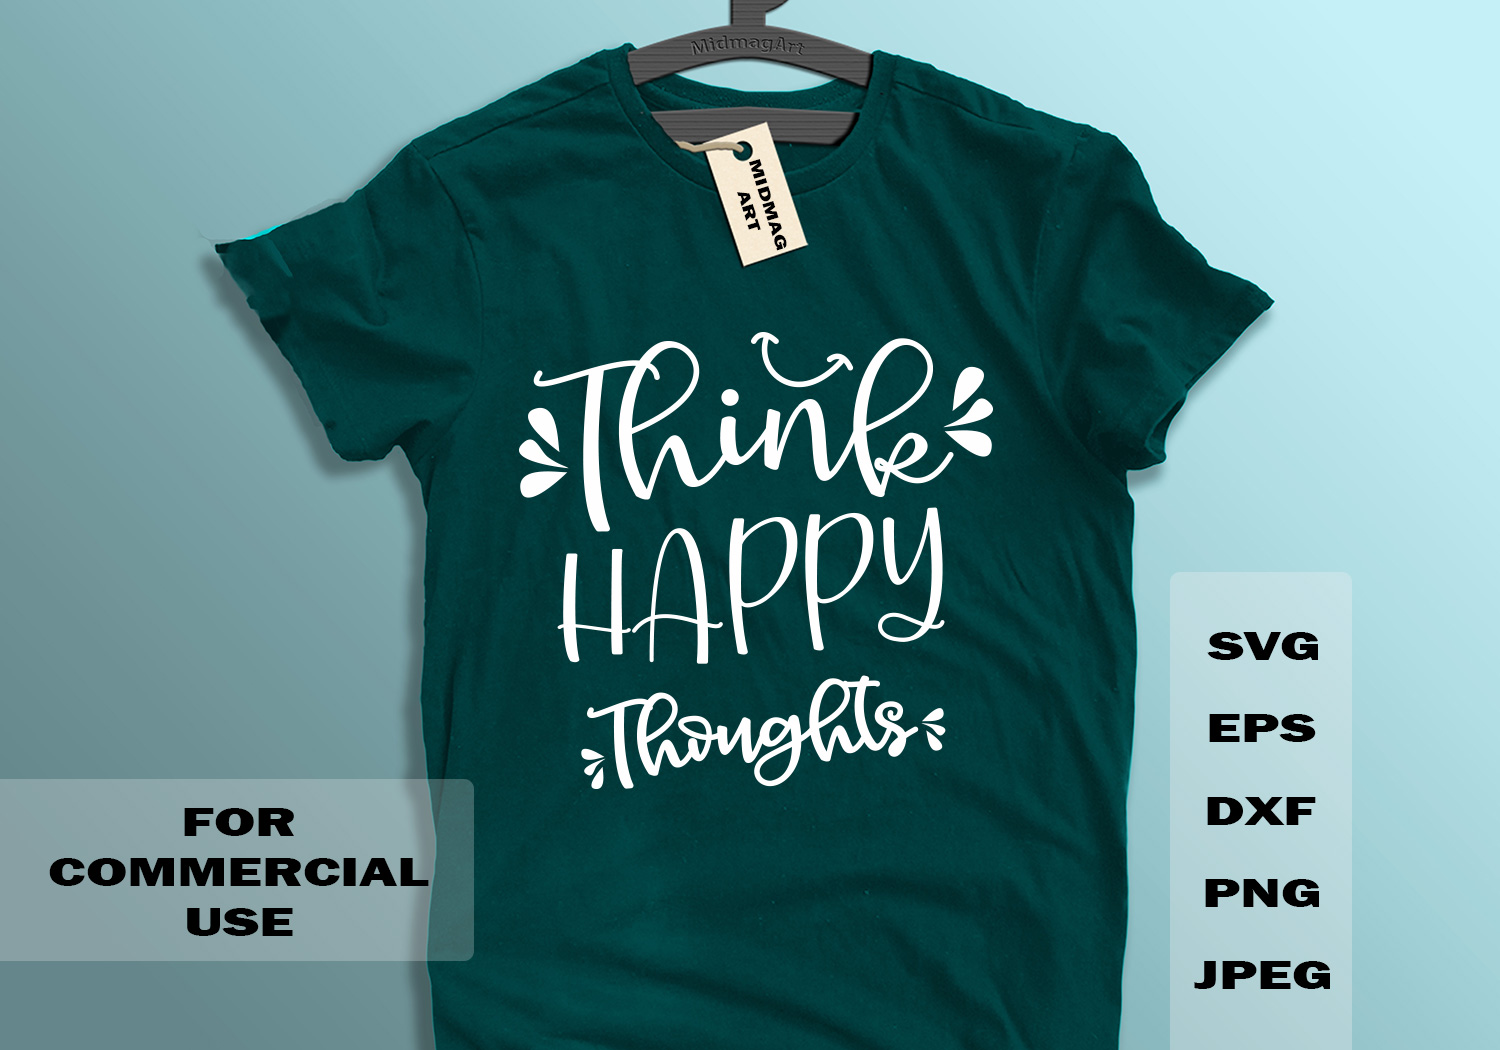 Download Free Think Happy Thoughts Graphic By Midmagart Creative Fabrica for Cricut Explore, Silhouette and other cutting machines.